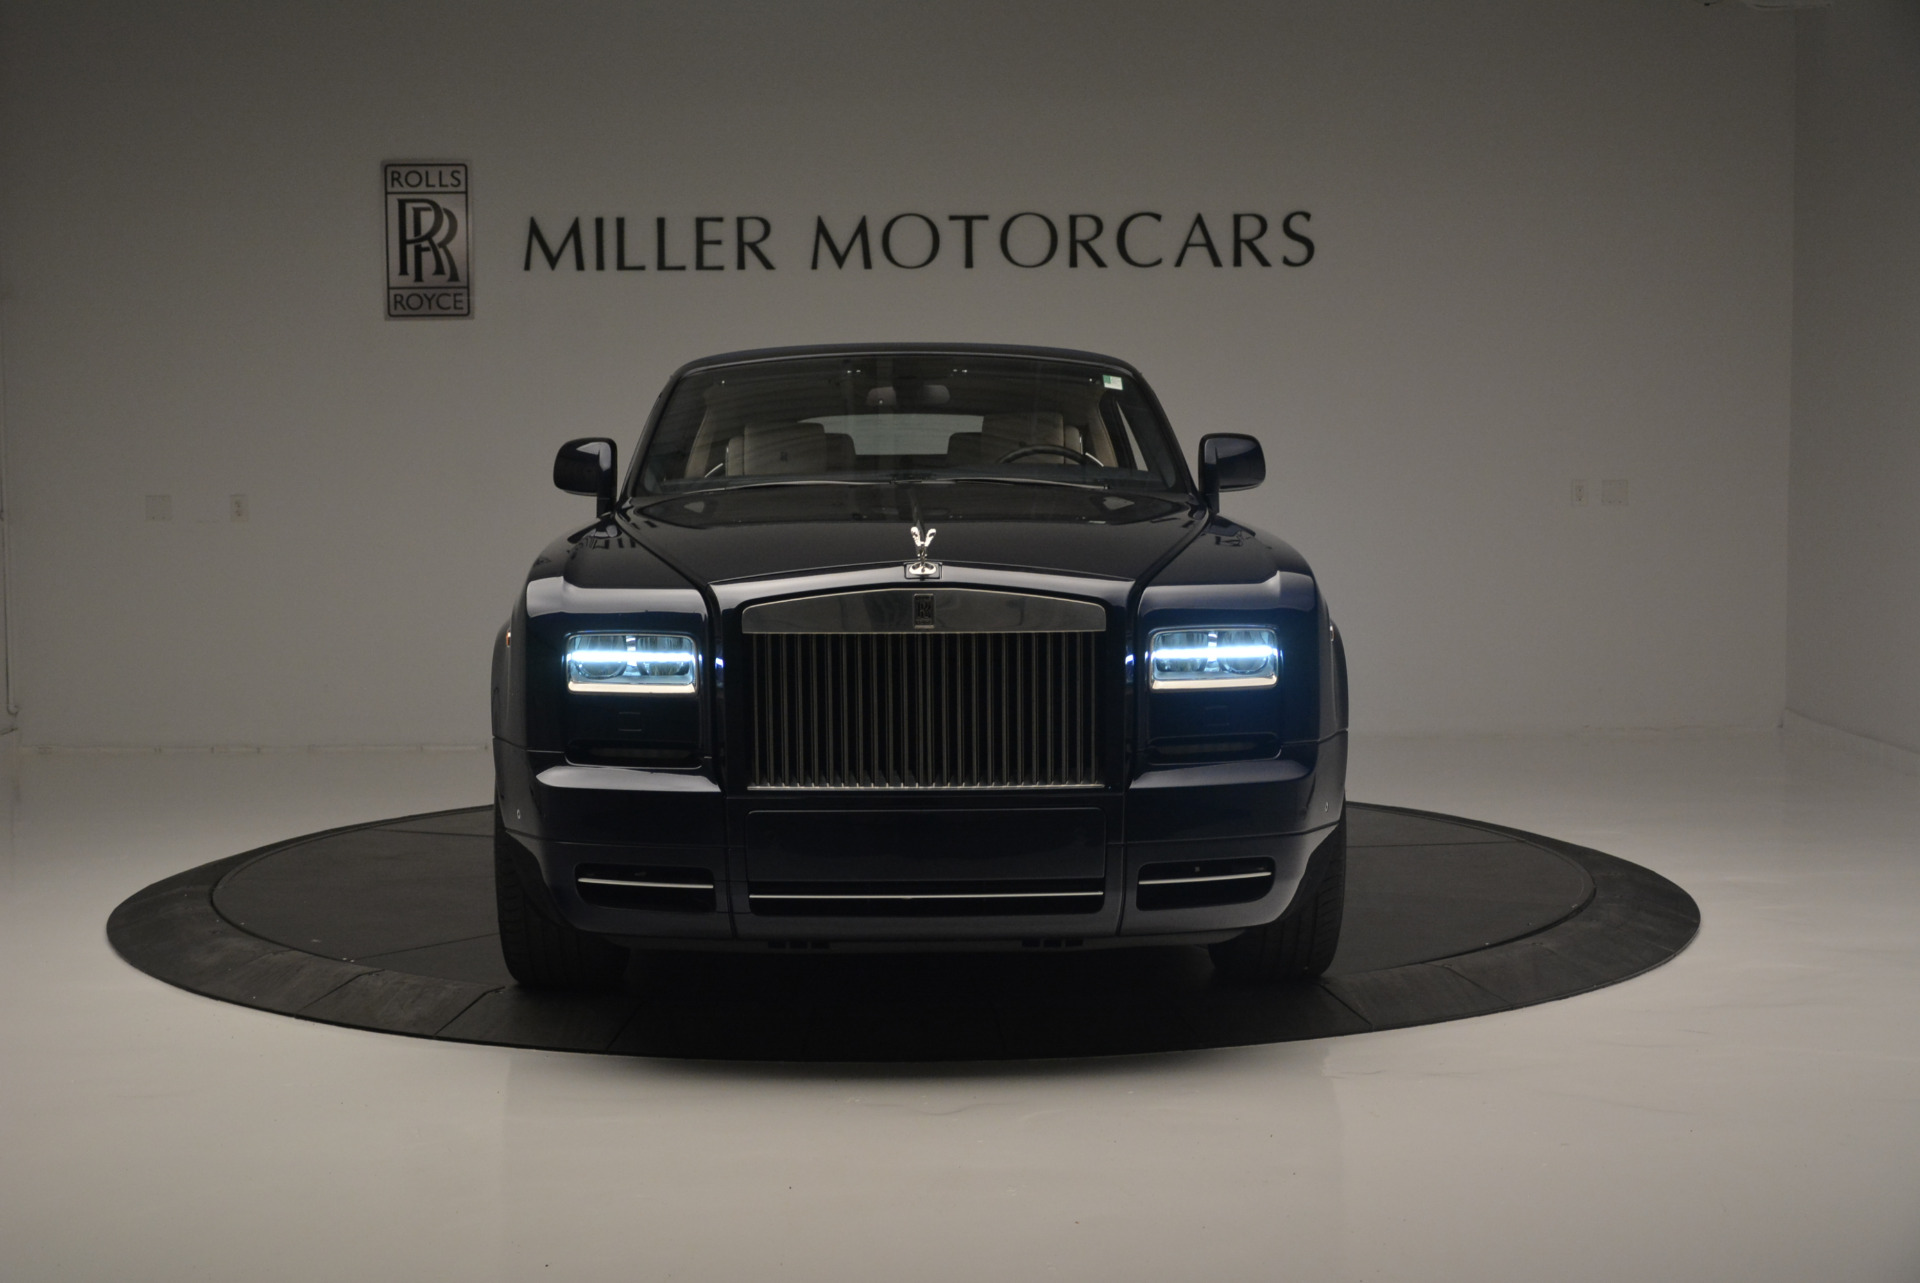 Used 2014 Rolls-Royce Phantom Drophead Coupe  For Sale In Greenwich, CT 2356_p16